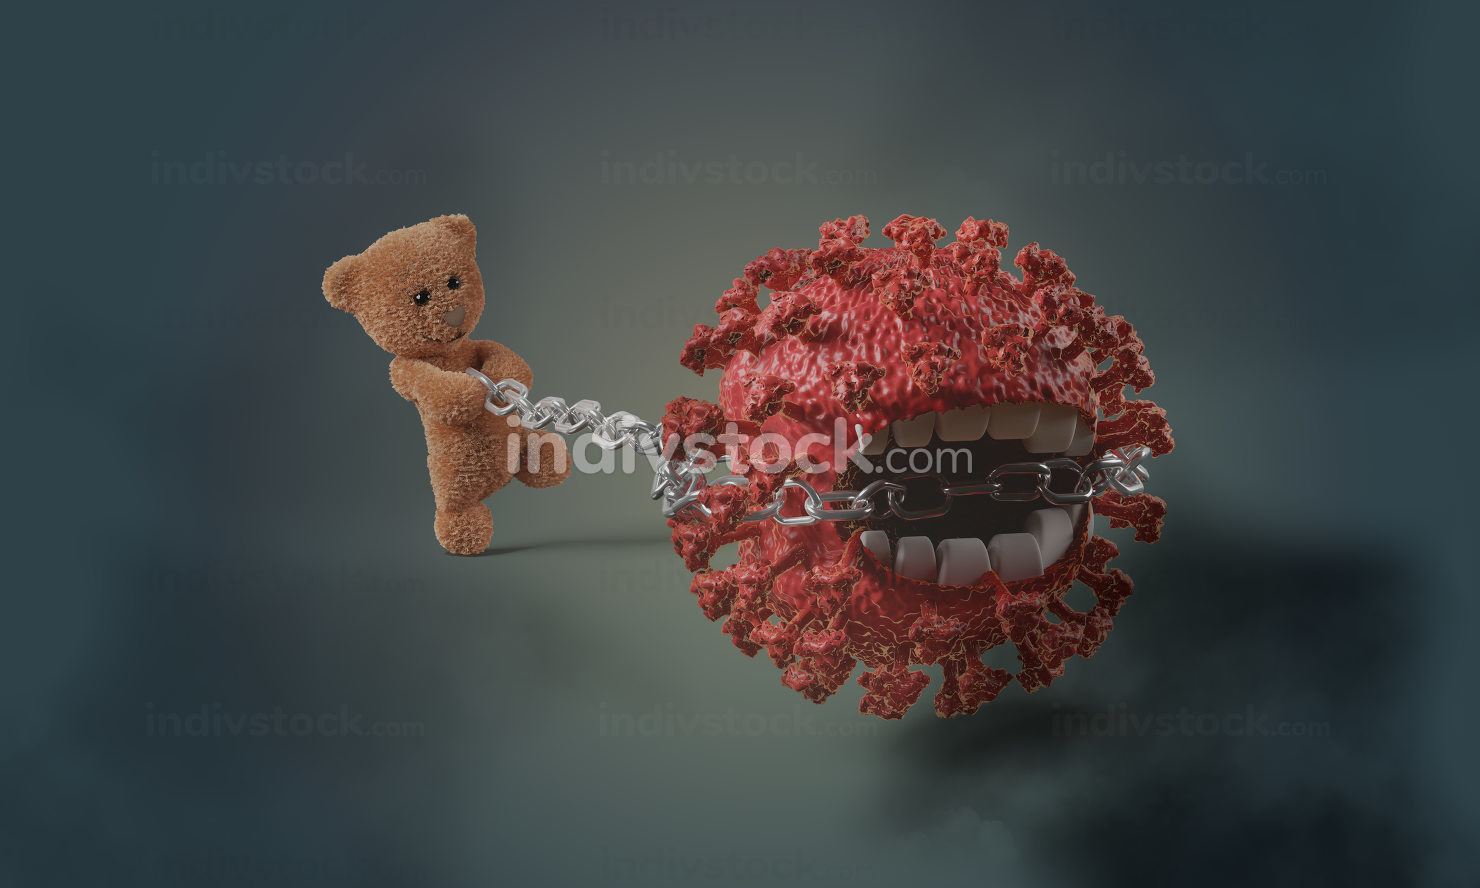 abstract concept of Corona Virus held in place by teddy bear wit